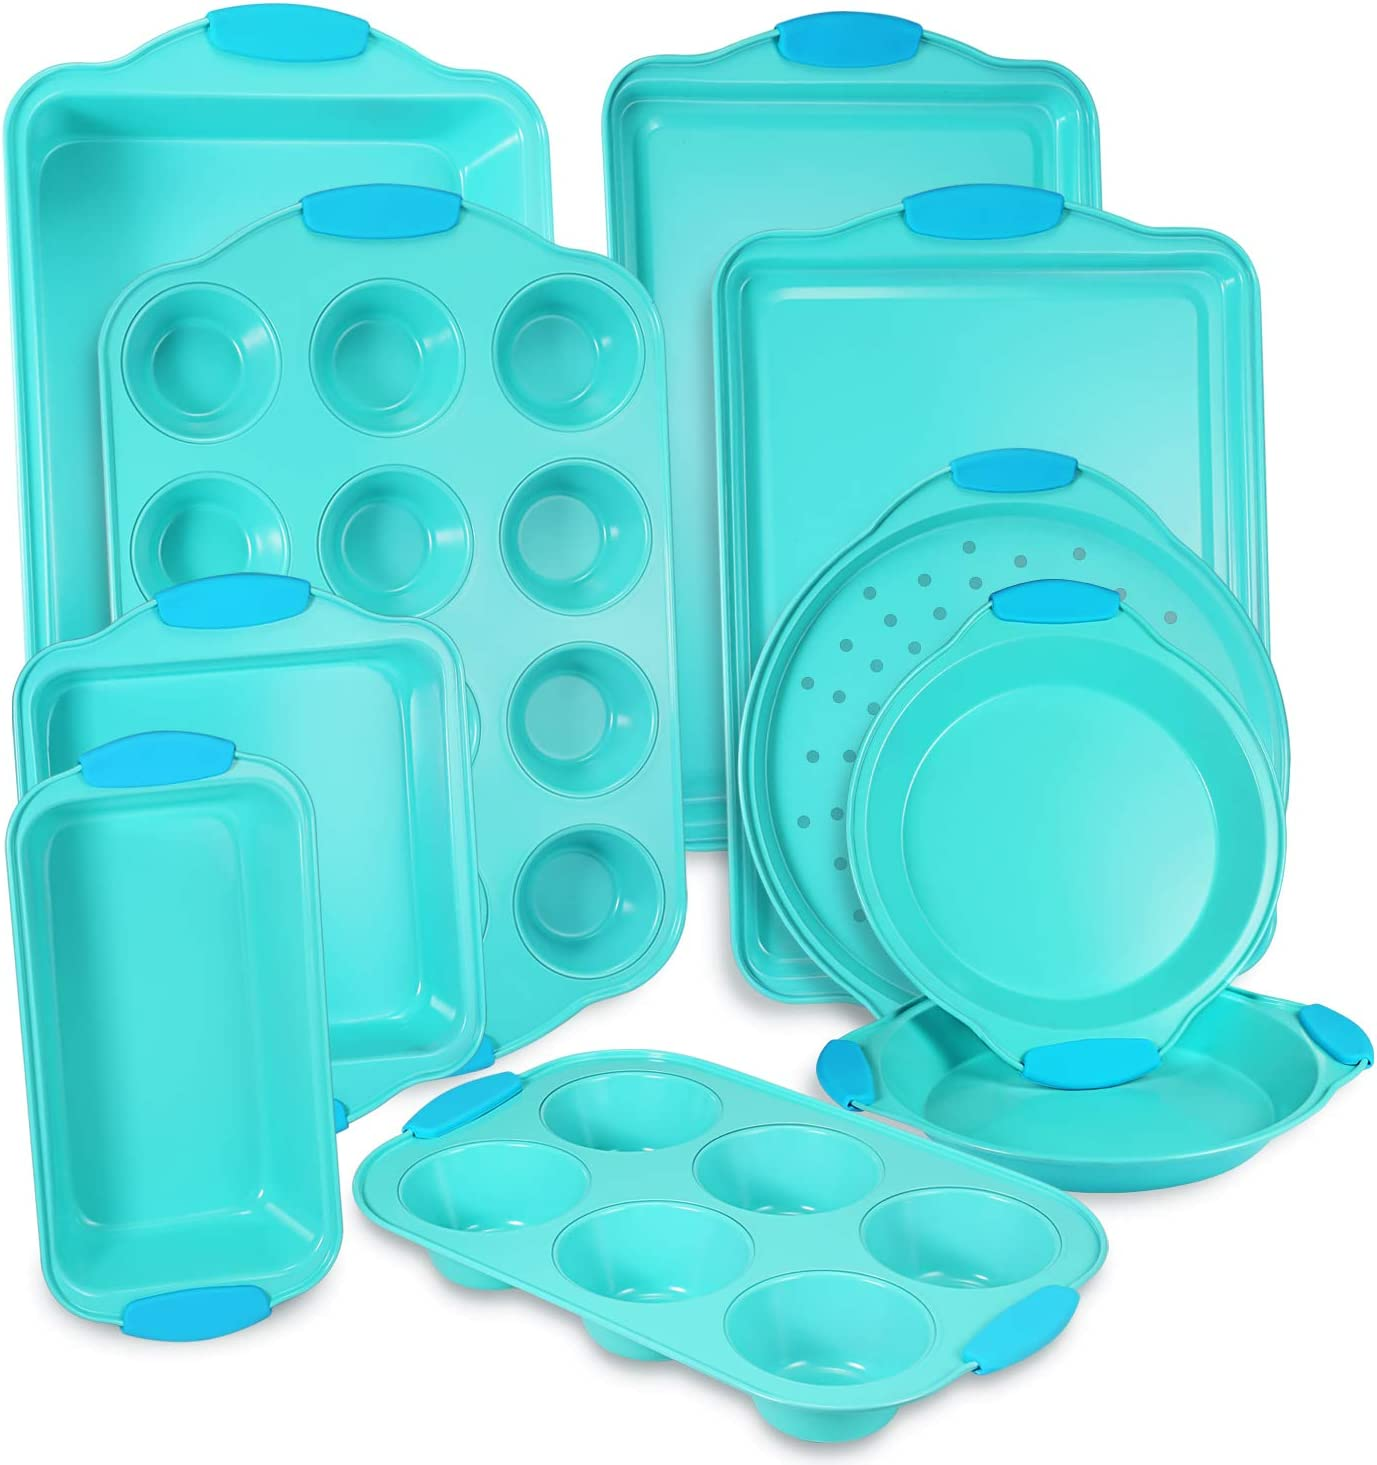 10-Piece Nonstick Bakeware Popular brand in the world Set with Handles Silicone Blue B Ultra-Cheap Deals